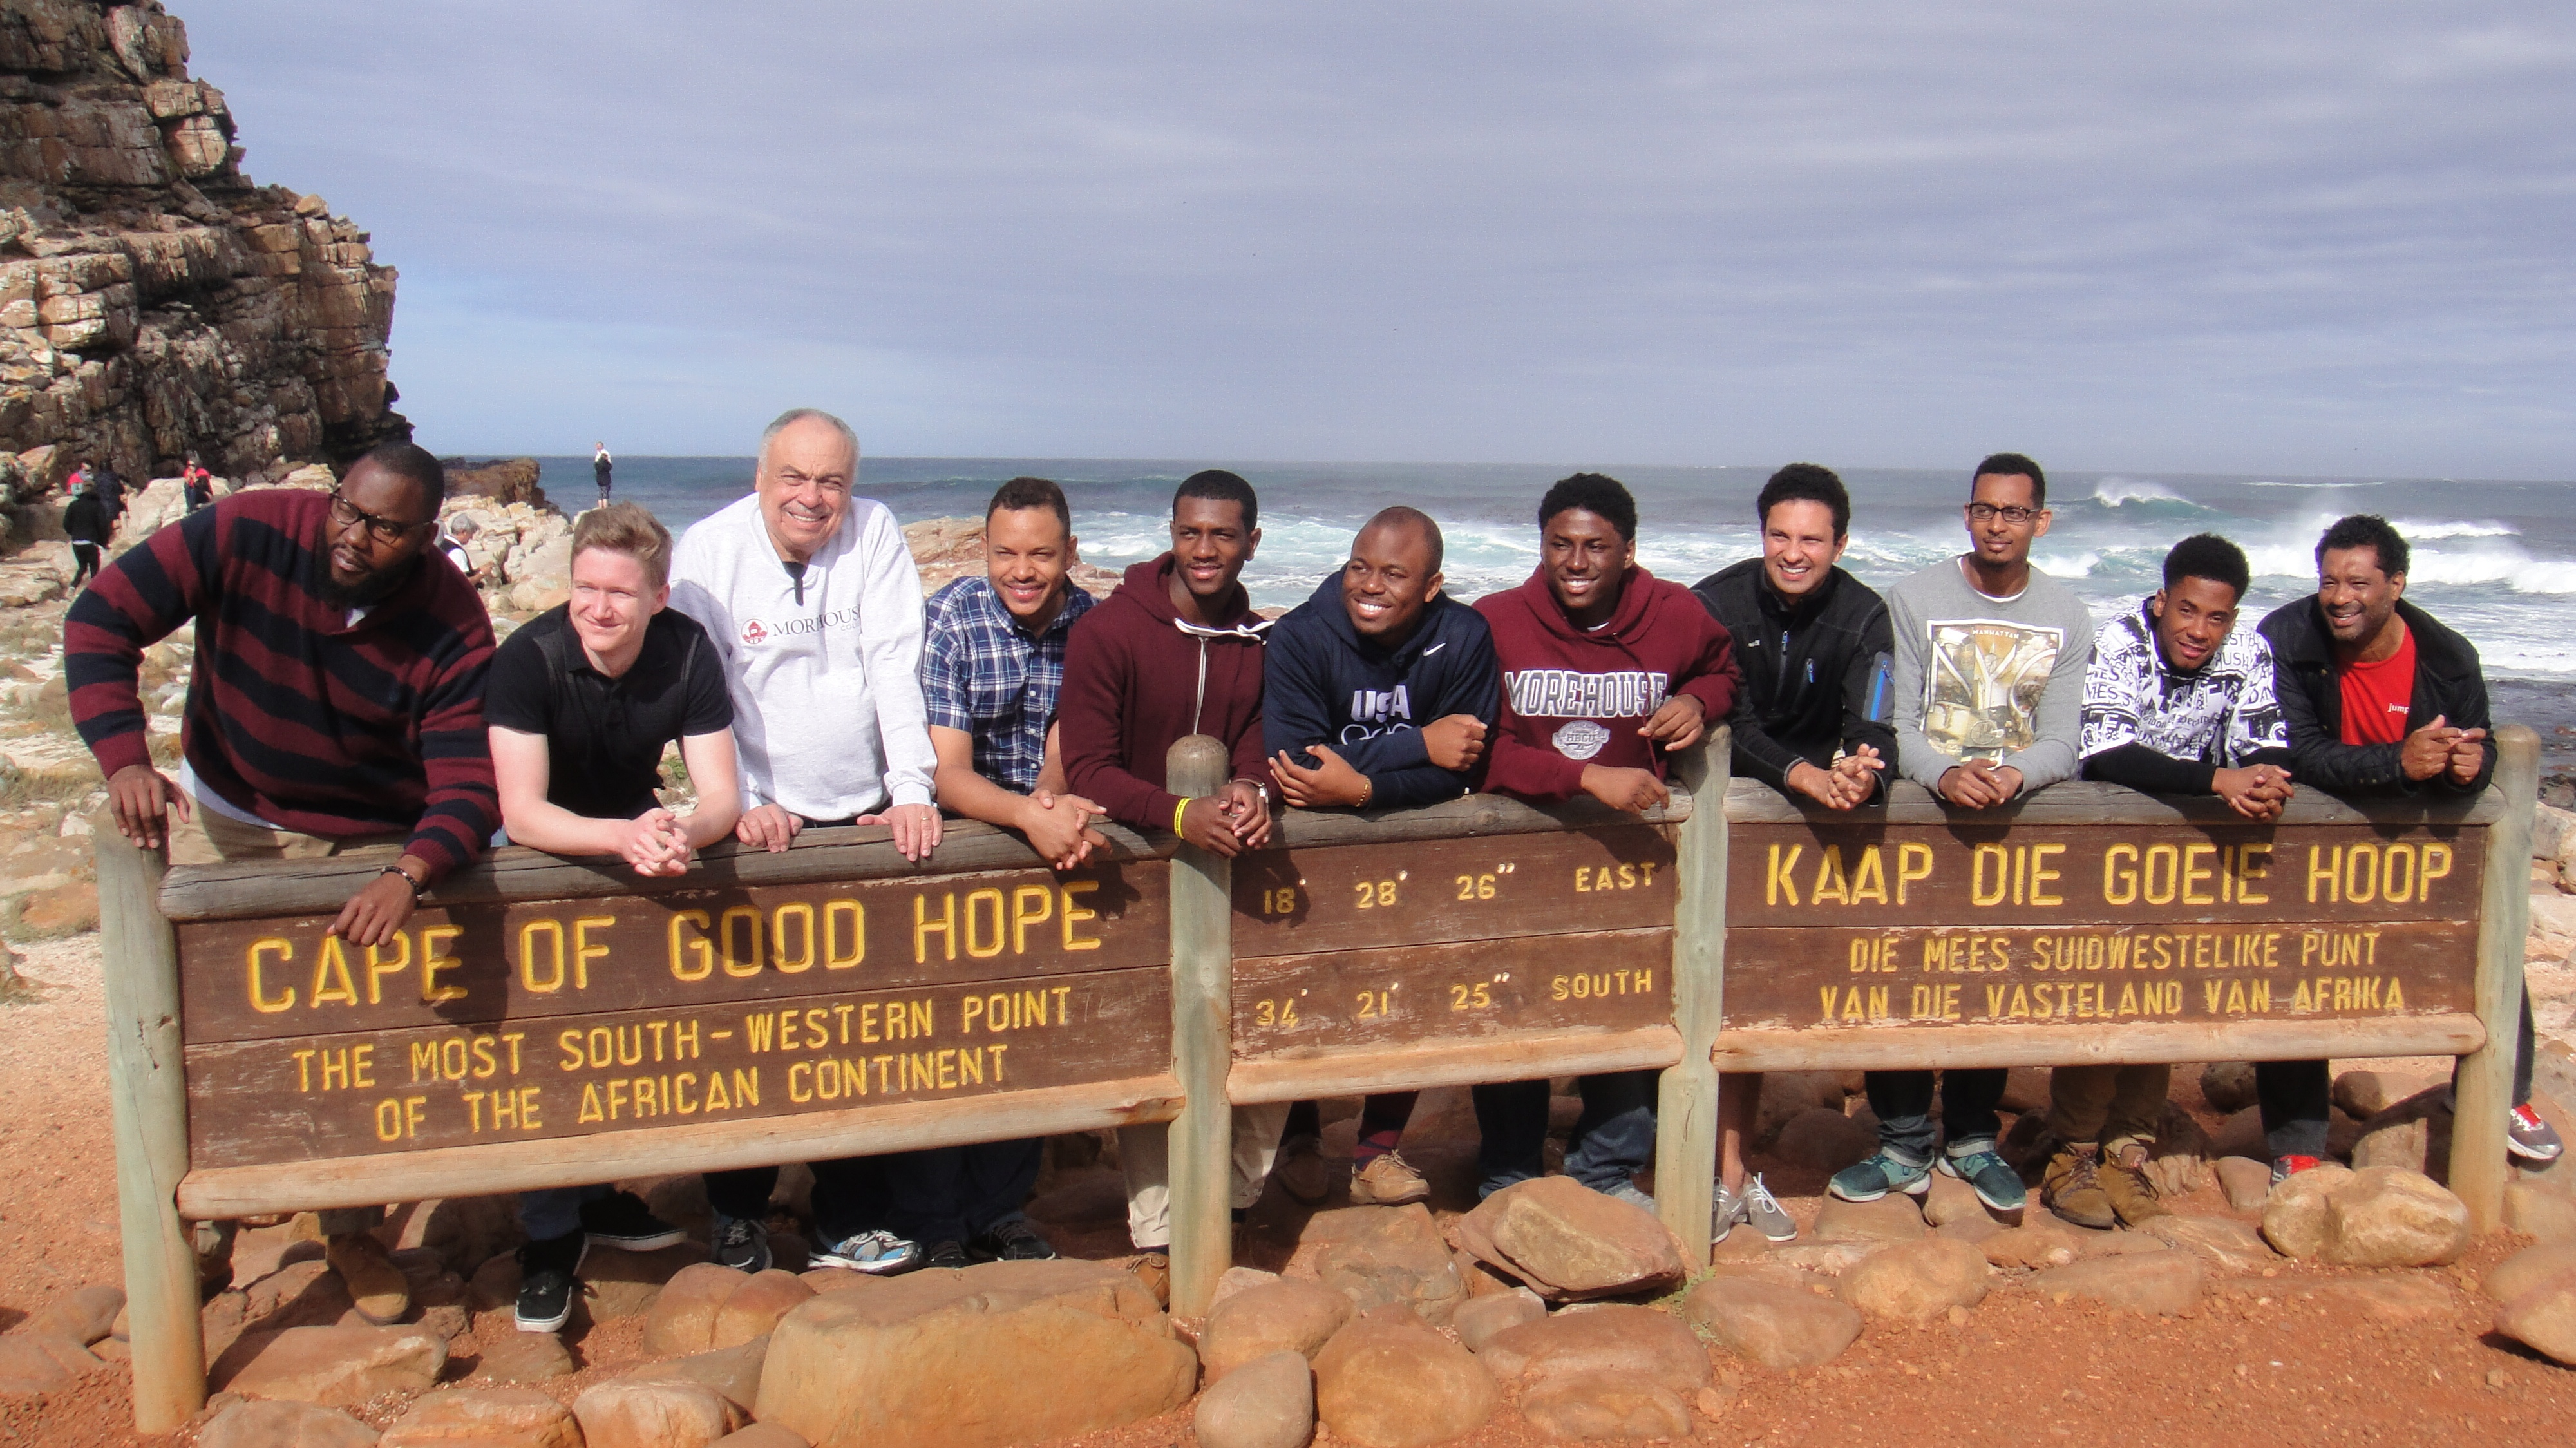 CAPAStudyAbroad_Julius_Coles_Interview_-_Morehouse_Students_Cape_of_Good_Hope.jpg